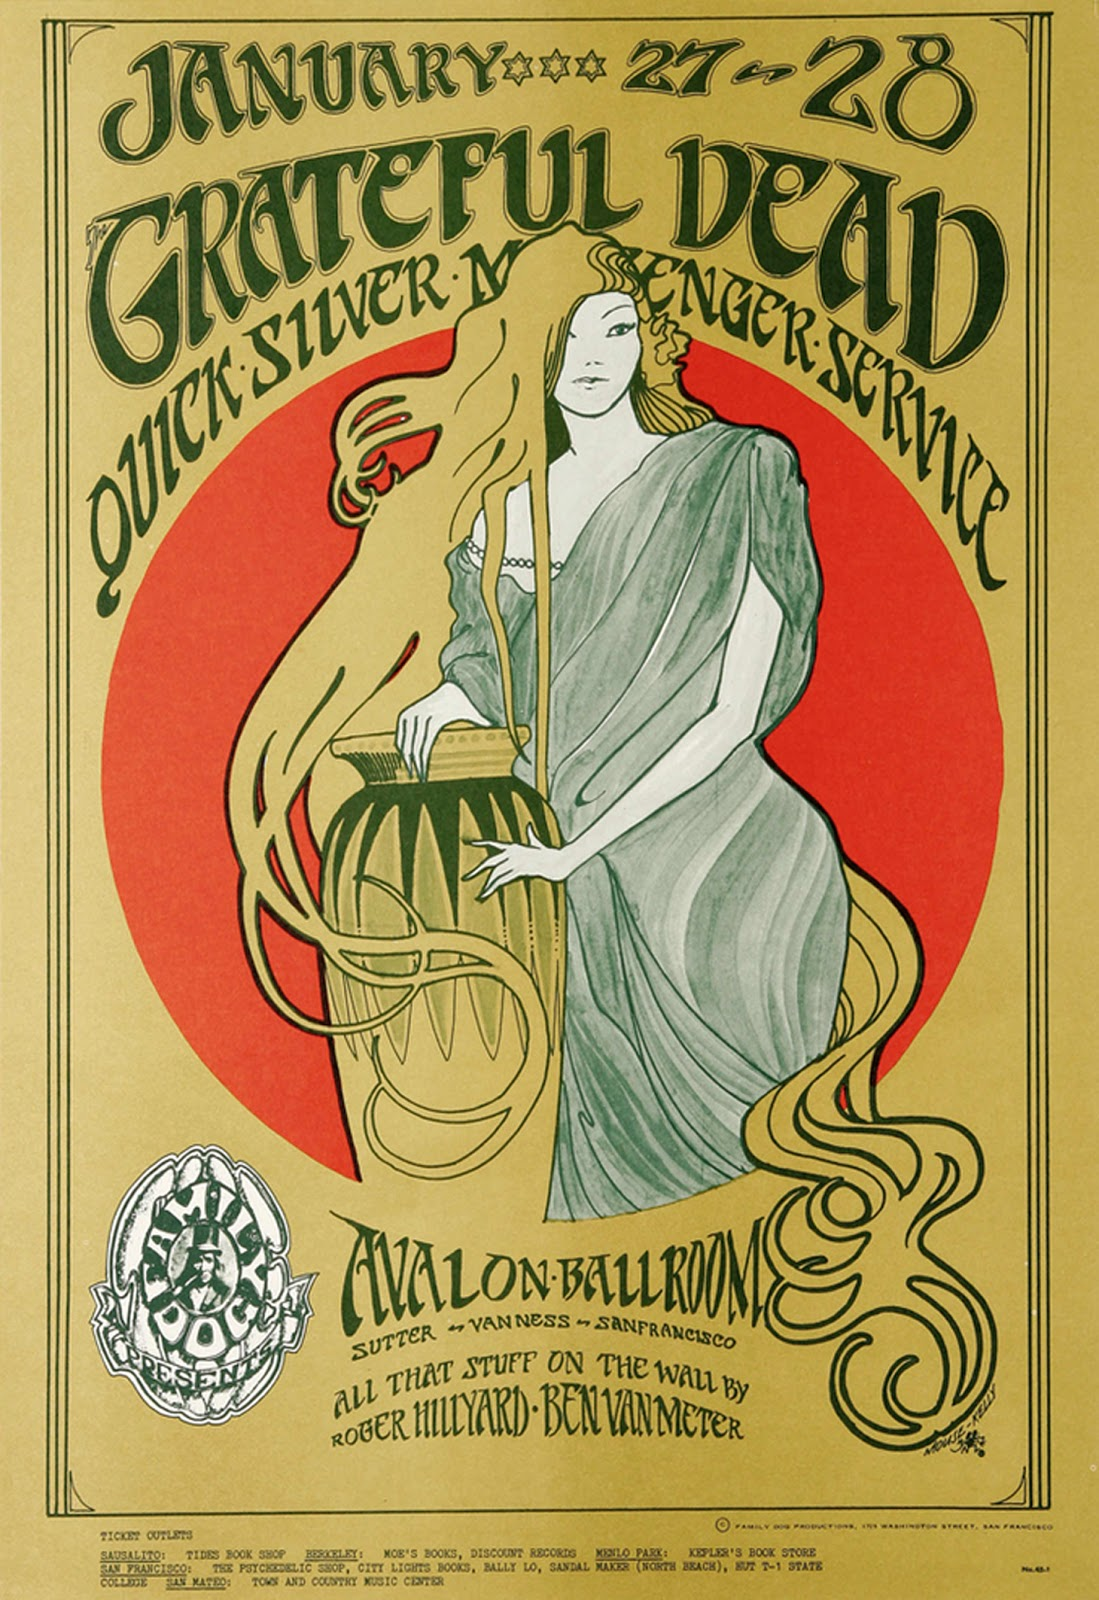 Vintage Concert Posters, Rock Photography, Apparel, and